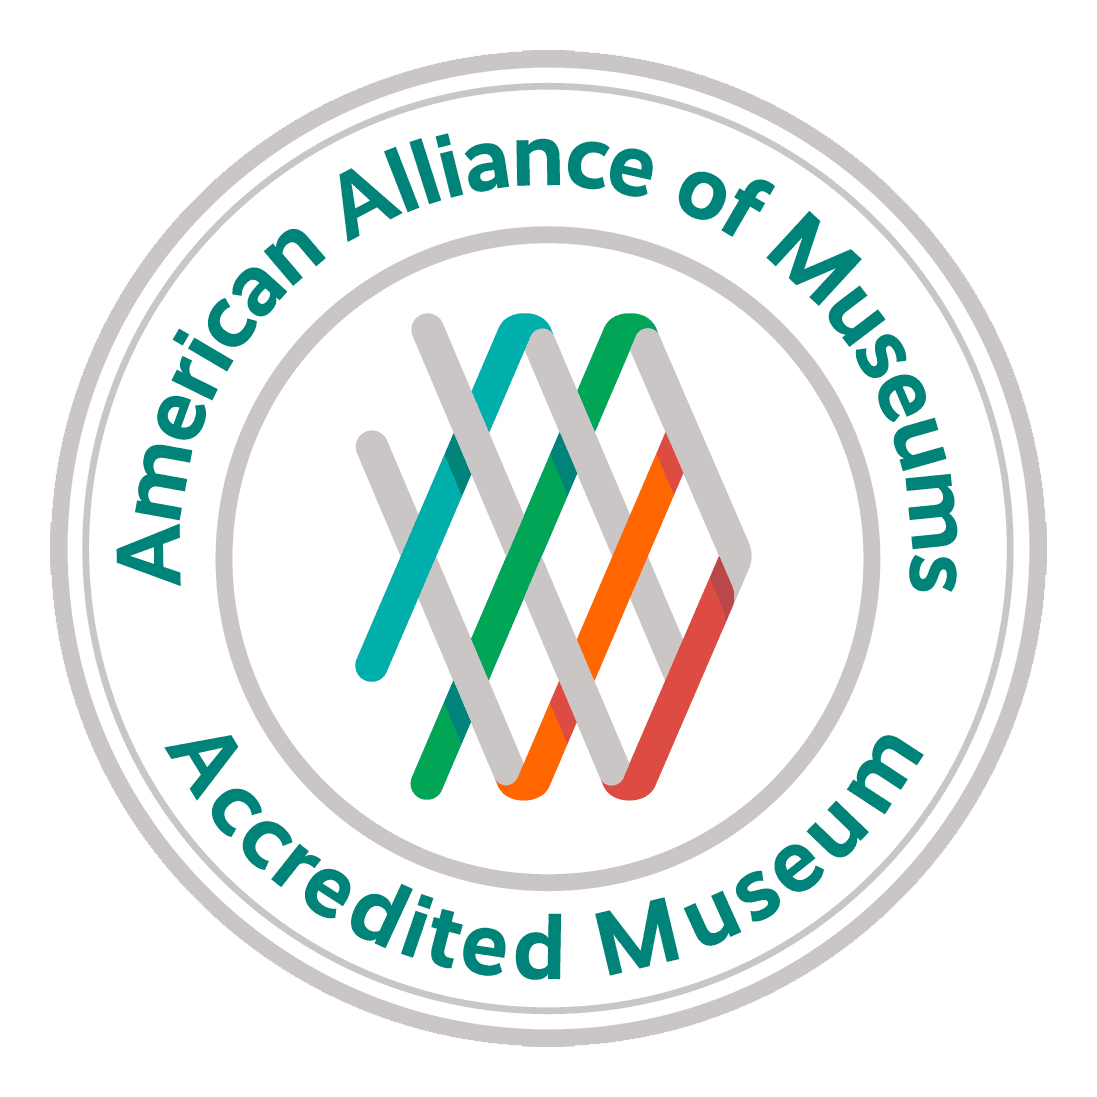 Accredited Museum (by the American Alliance of Museums)